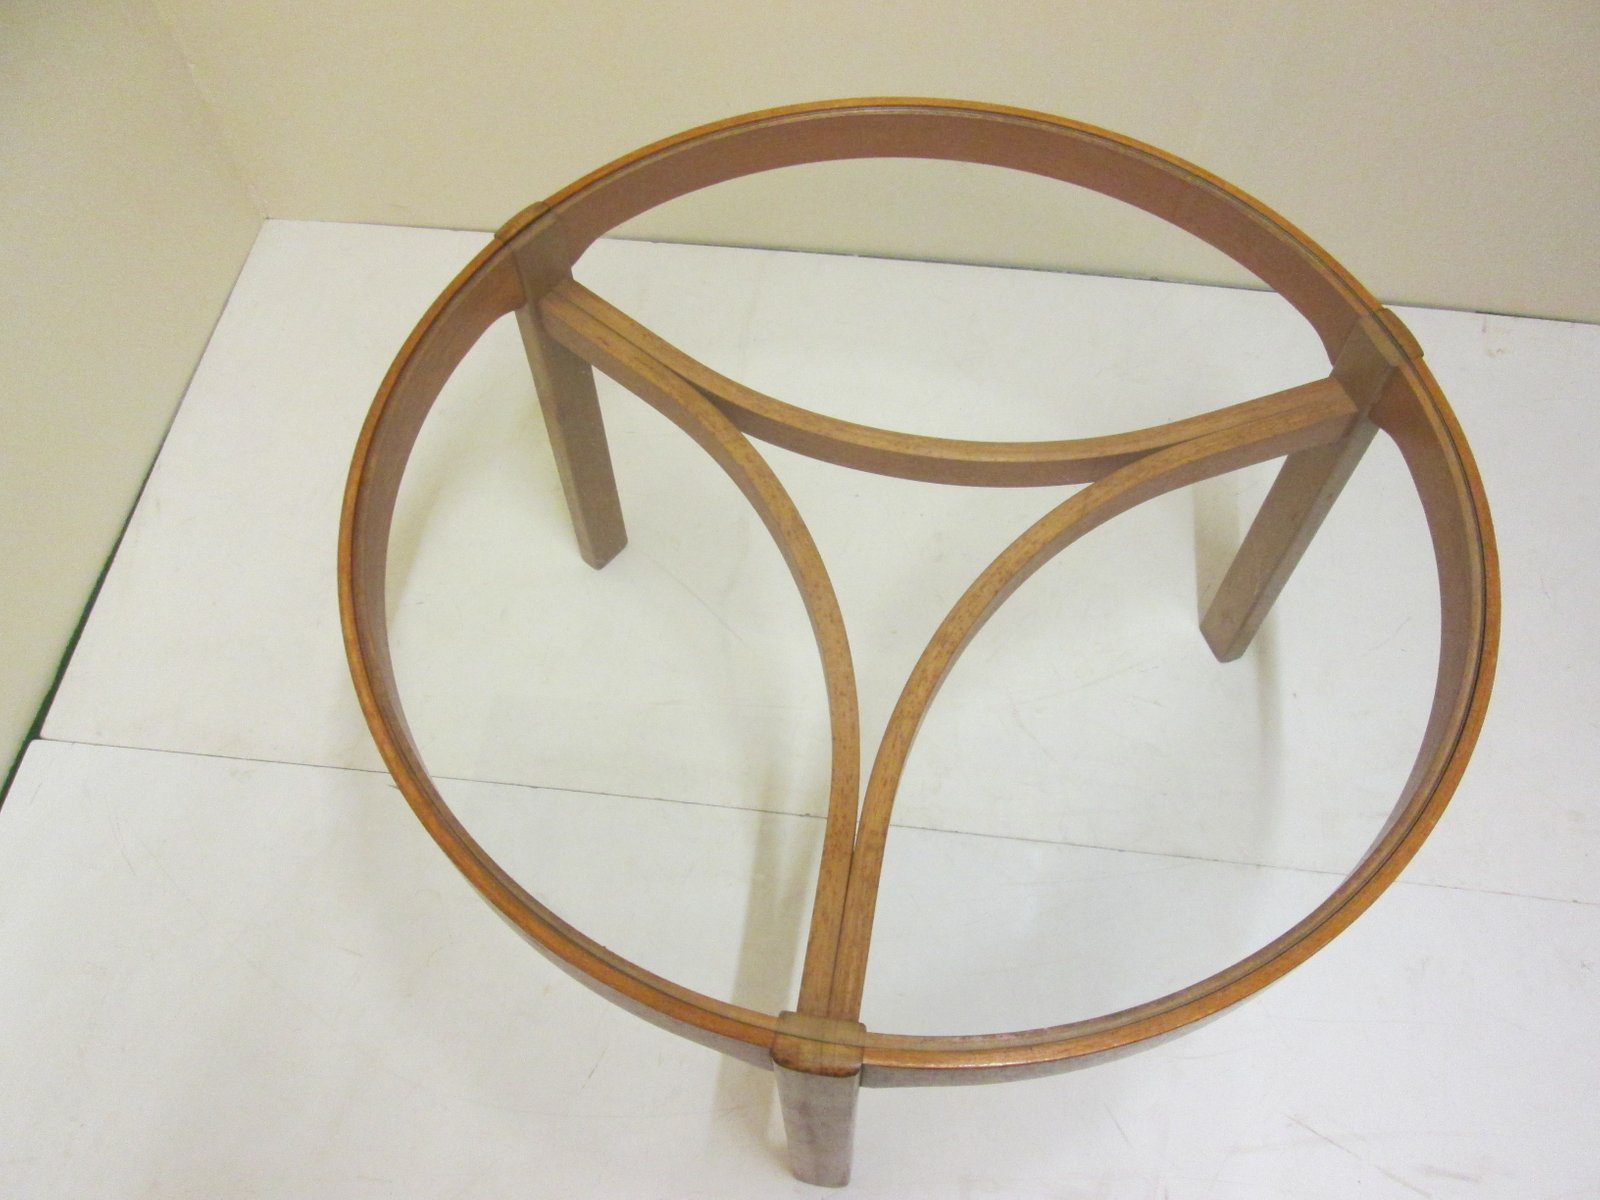 Vintage Teak Round Coffee Table With 3 Oval Nesting Tables